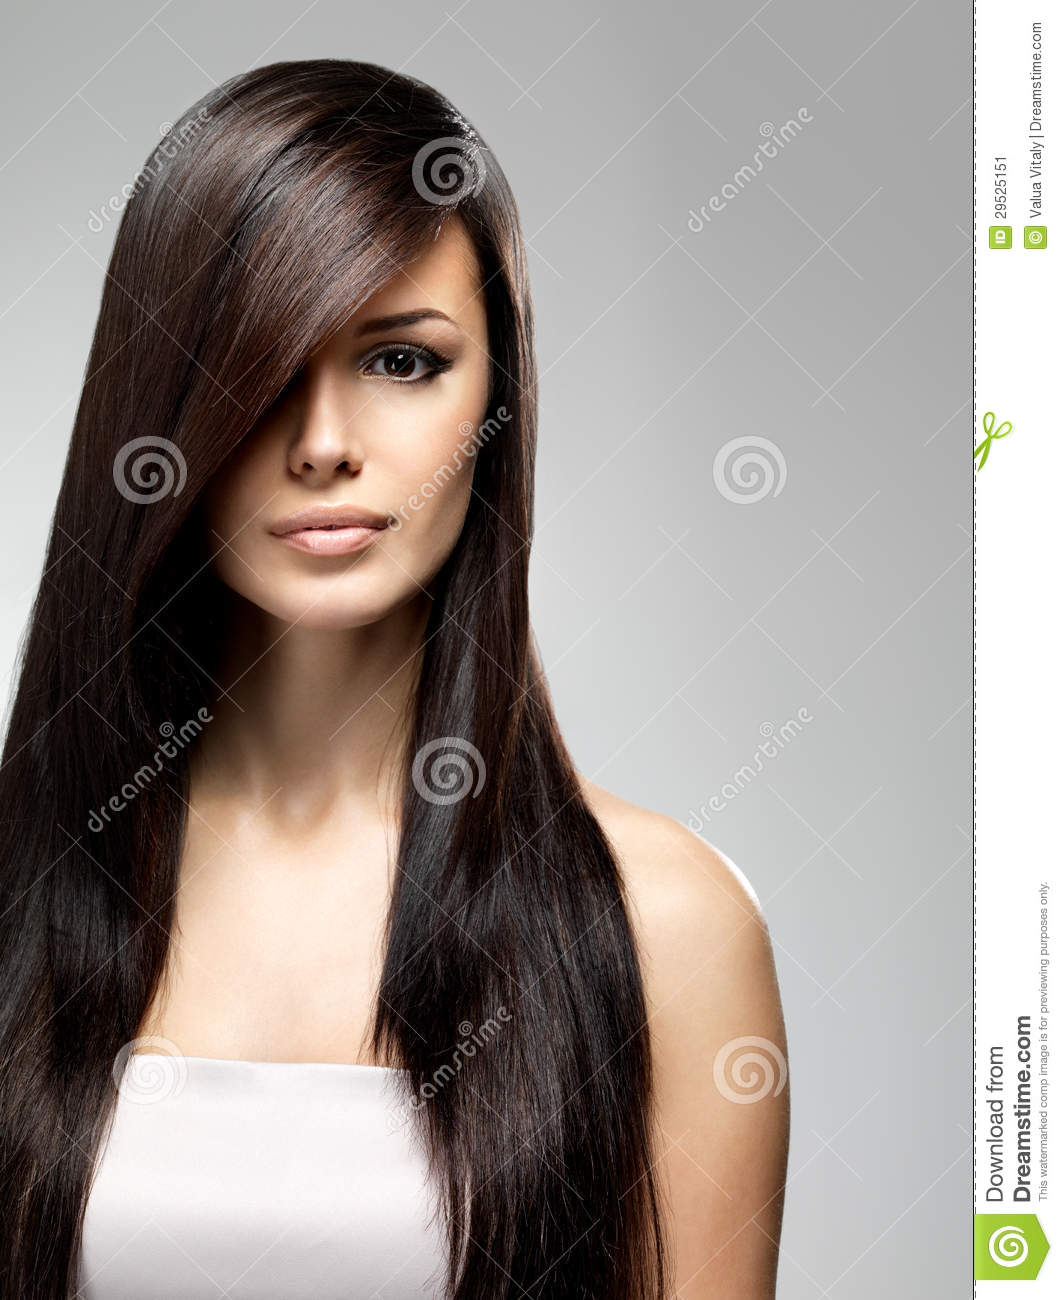 Beautiful Woman With Long Straight Hair Stock Image - Image: 29525151